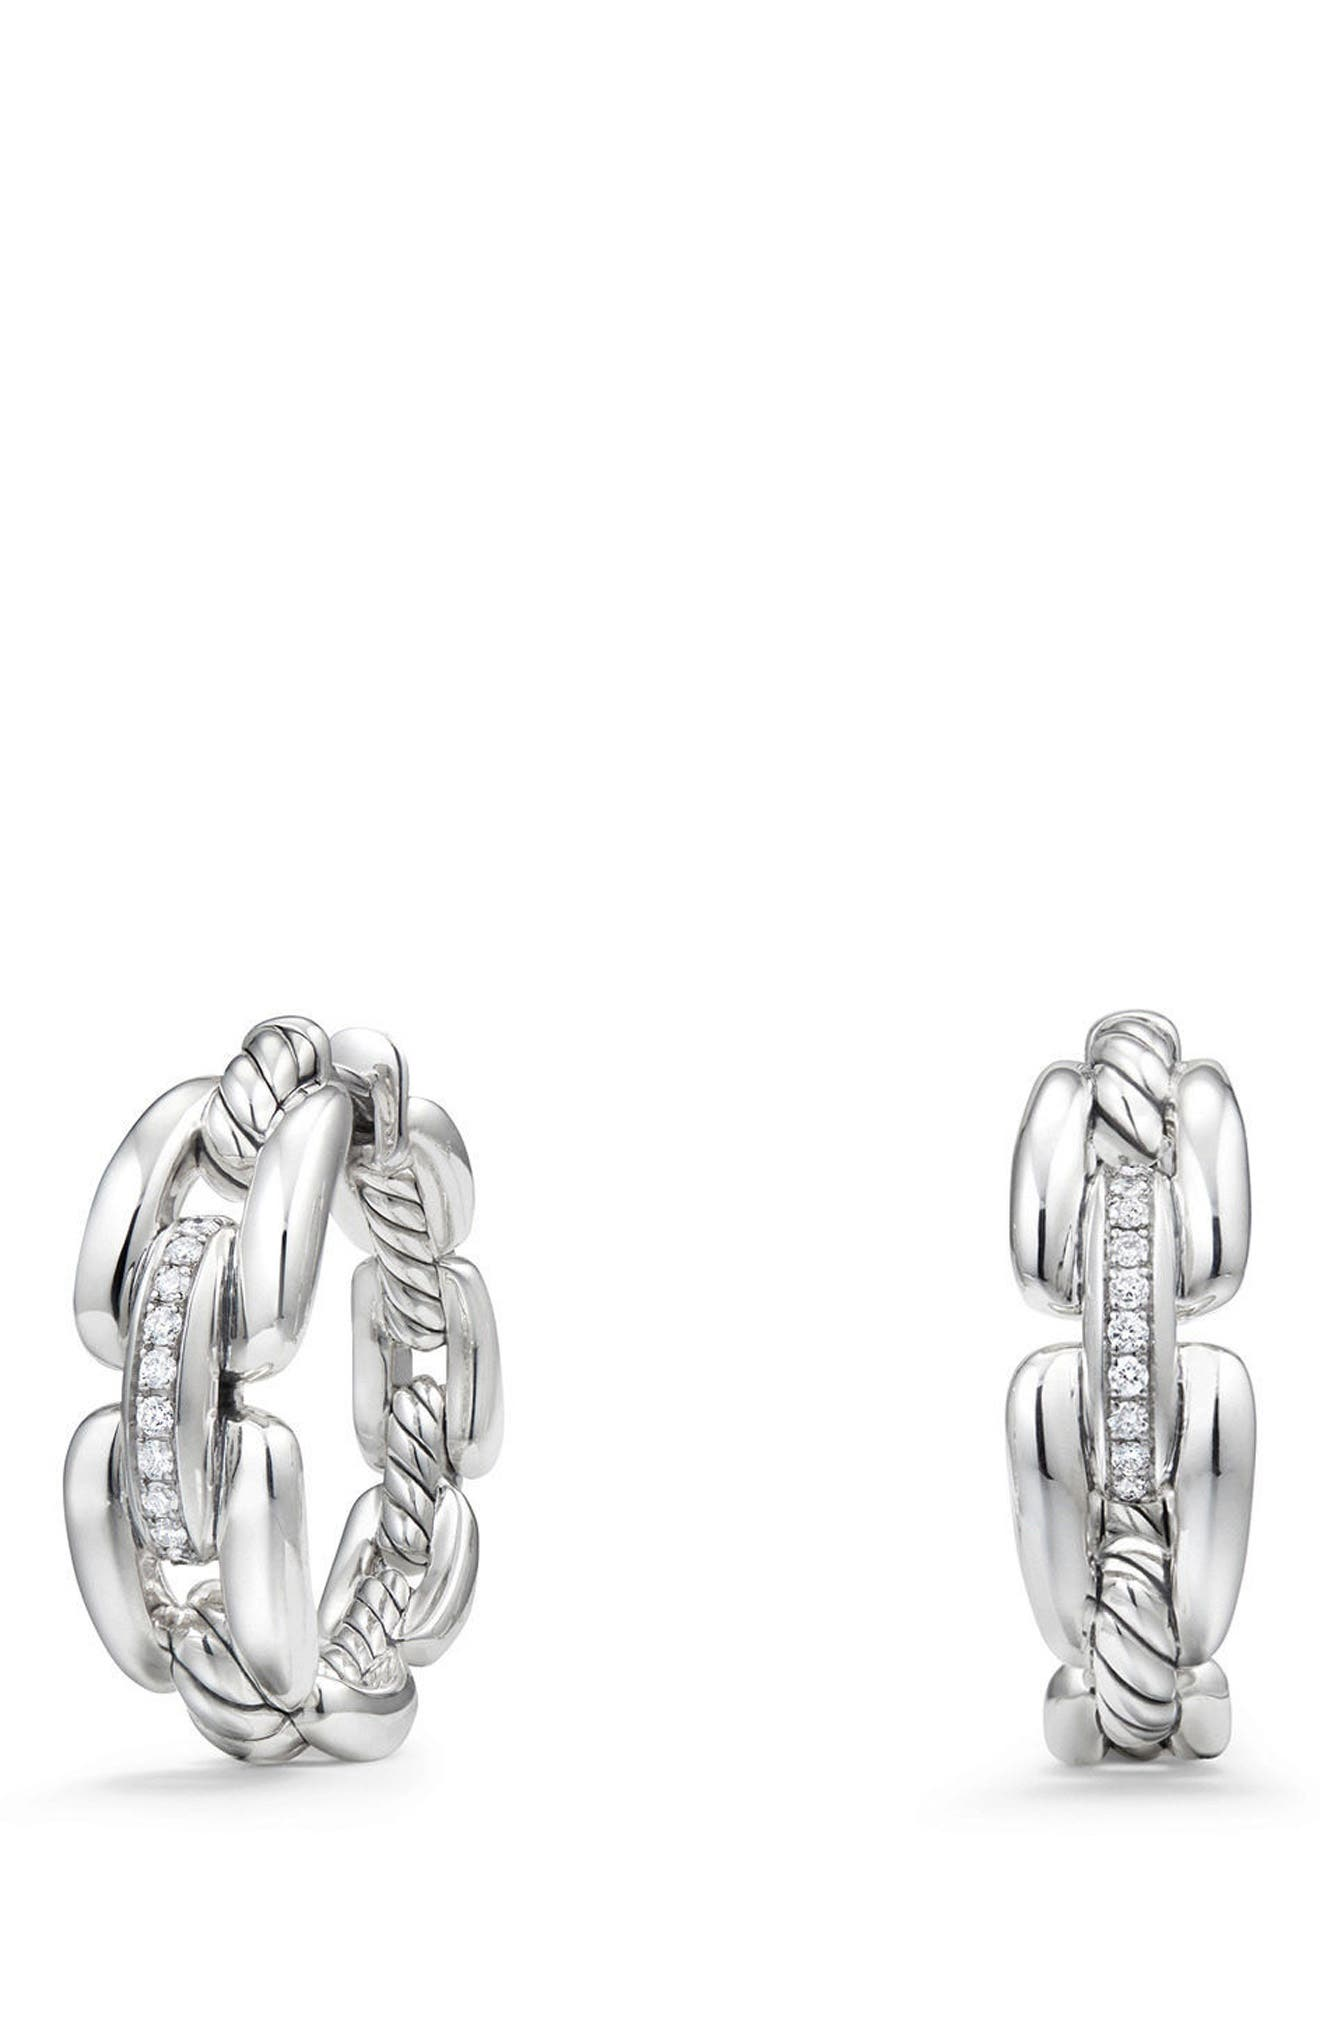 David Yurman Wellesley Link Hoop Earrings with Diamonds, 23mm